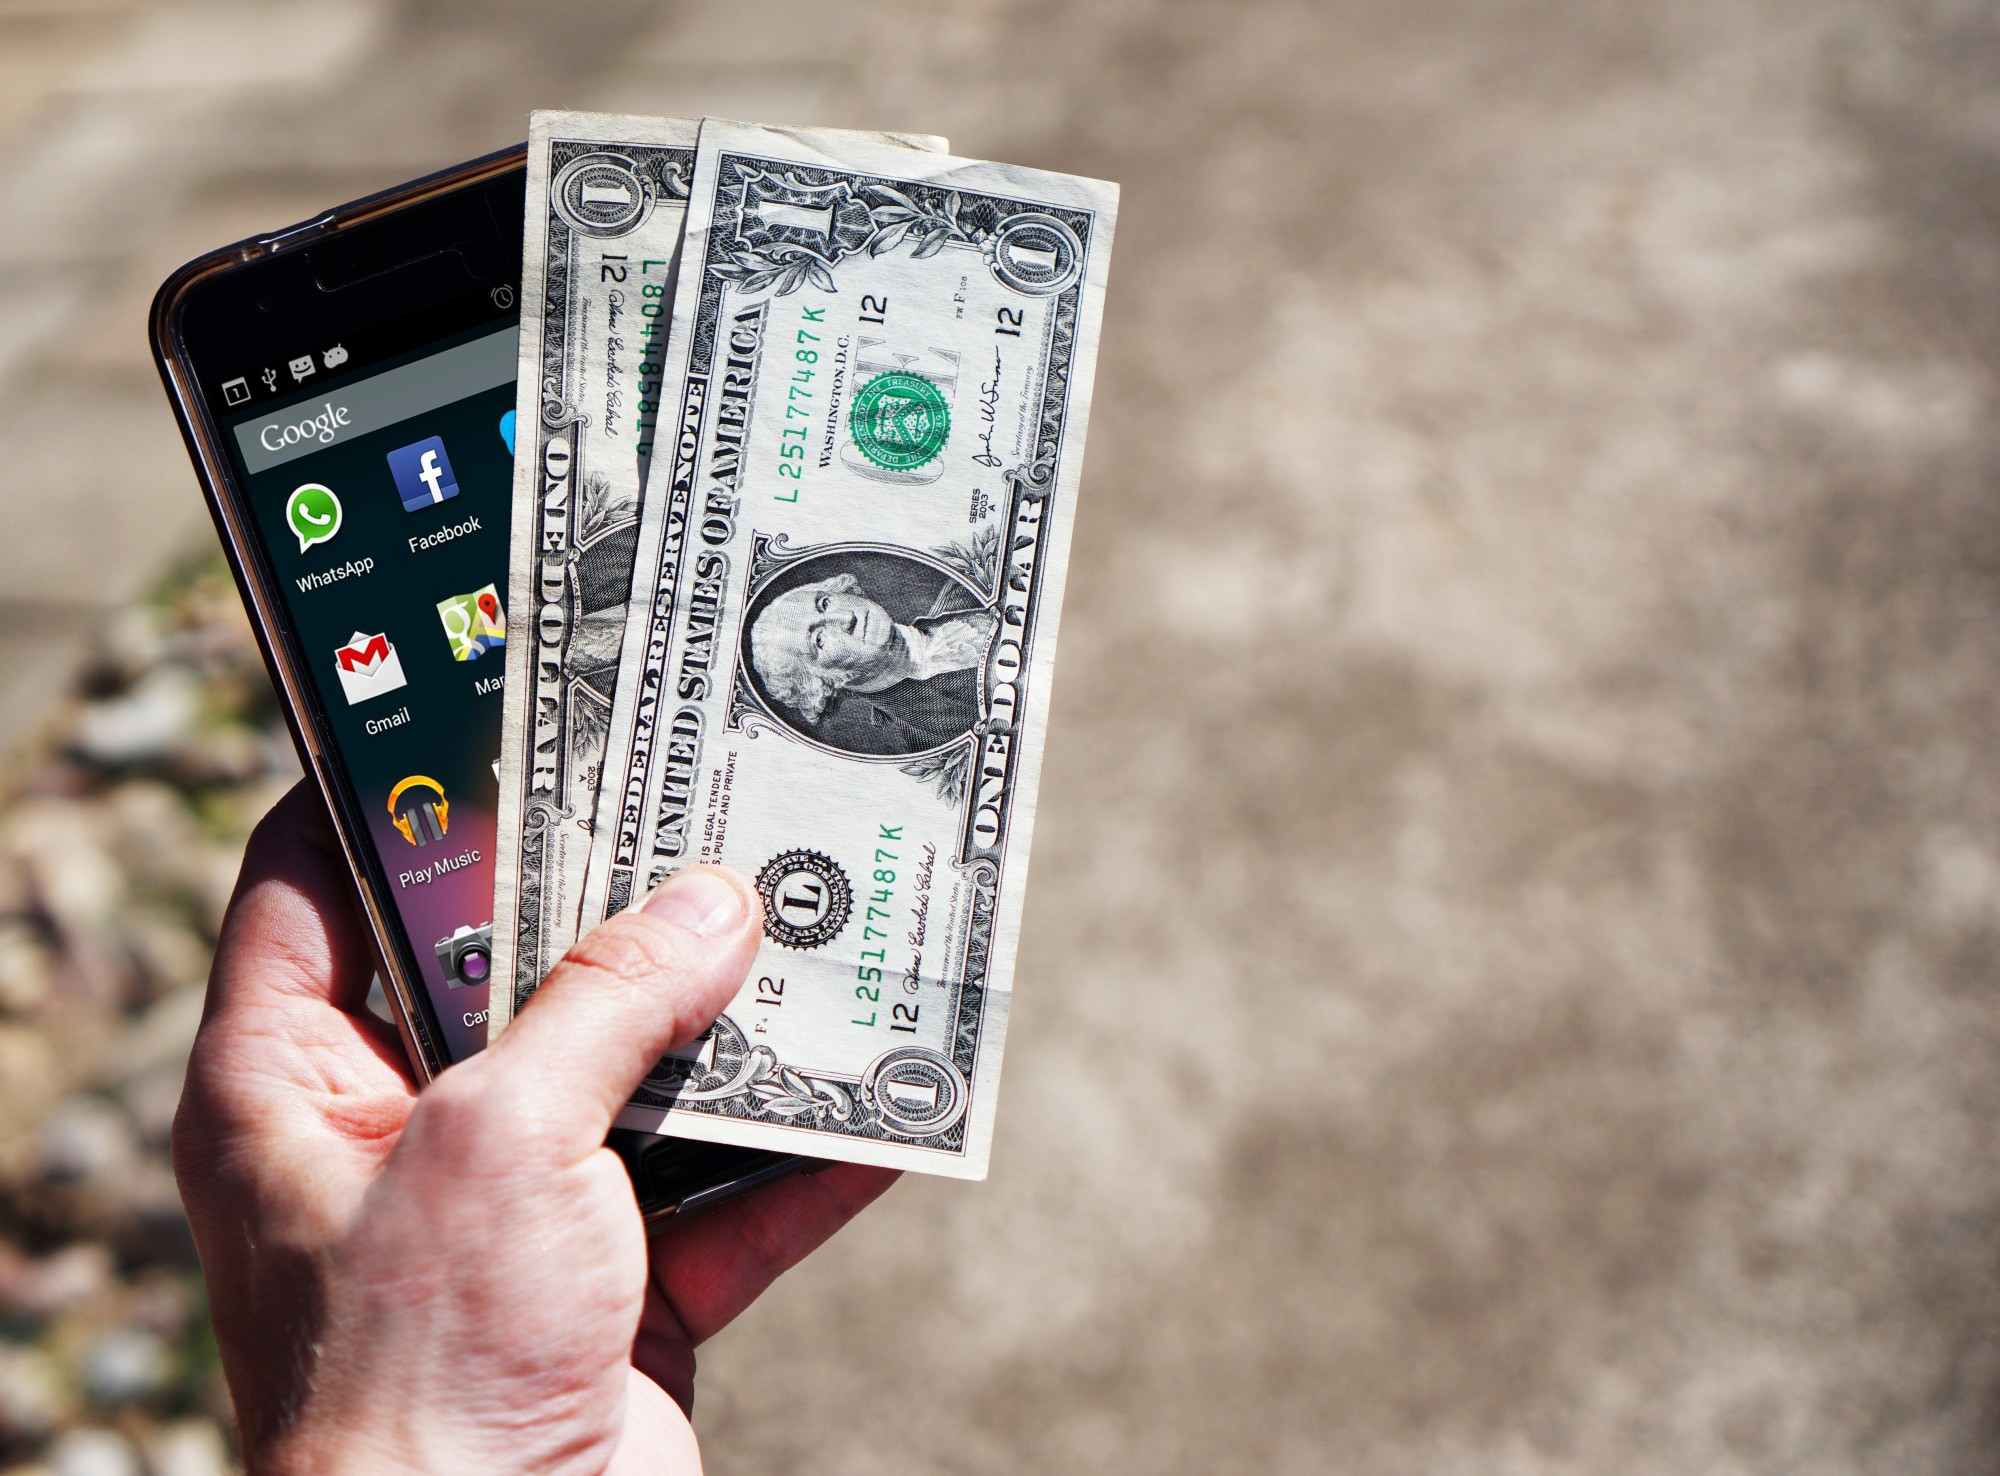 smart phone and cash in person's hand